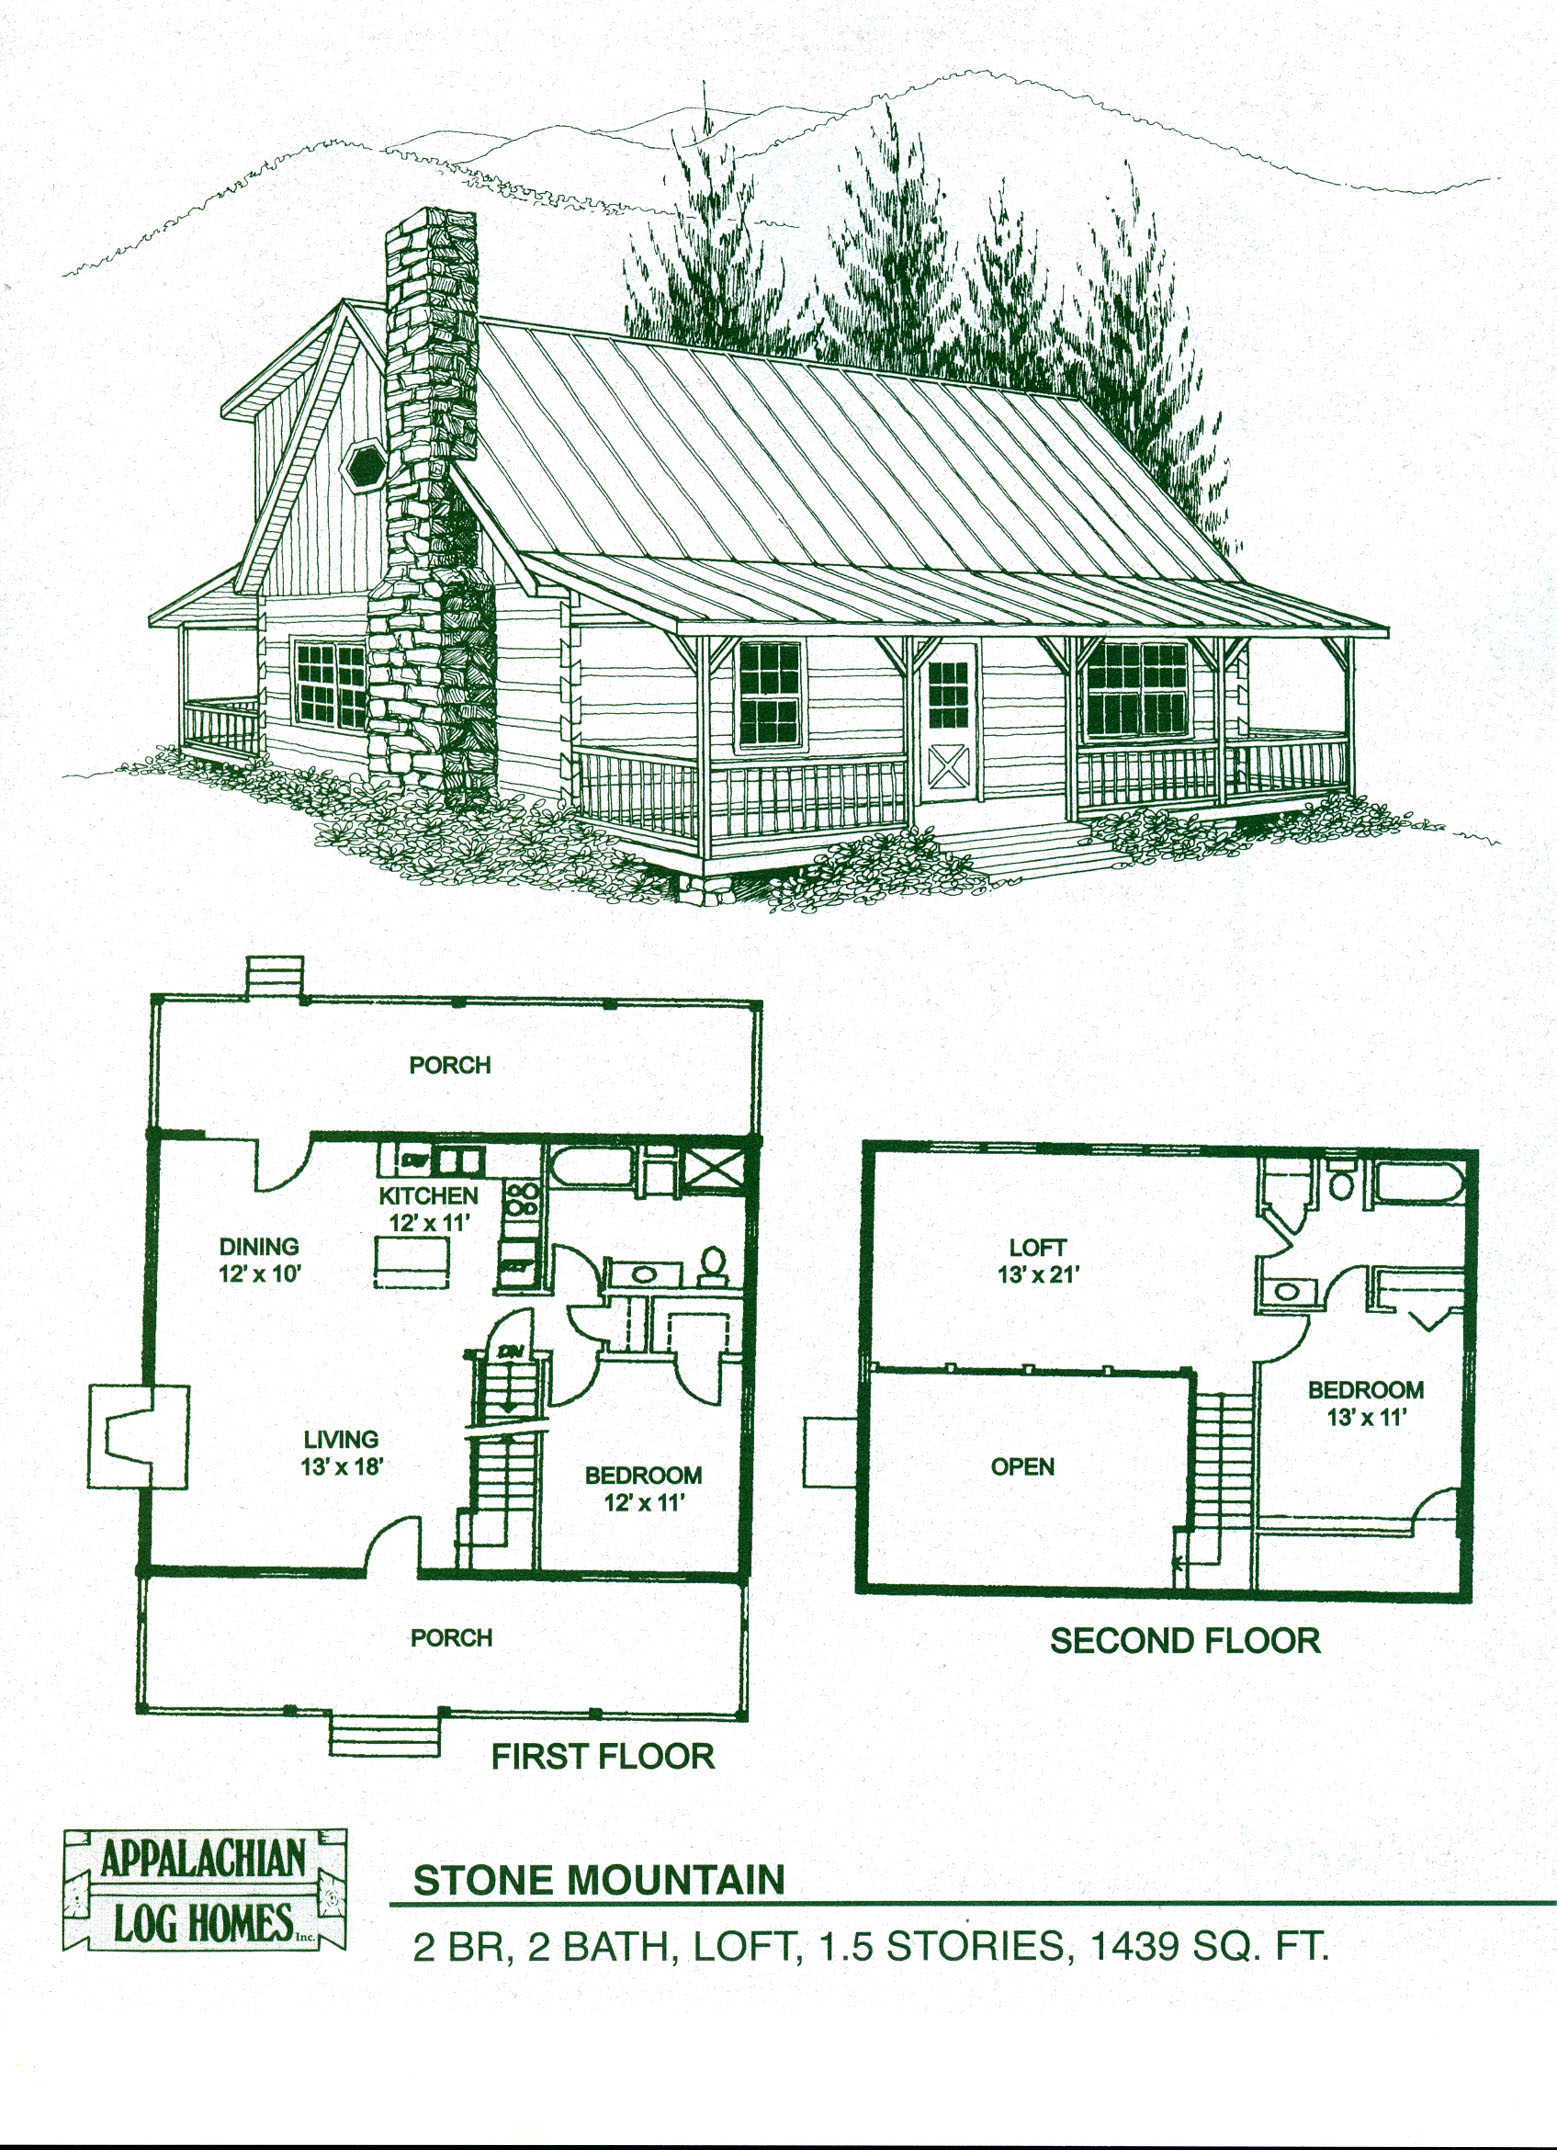 Simple log cabin drawing at free for for Simple log cabin plans free